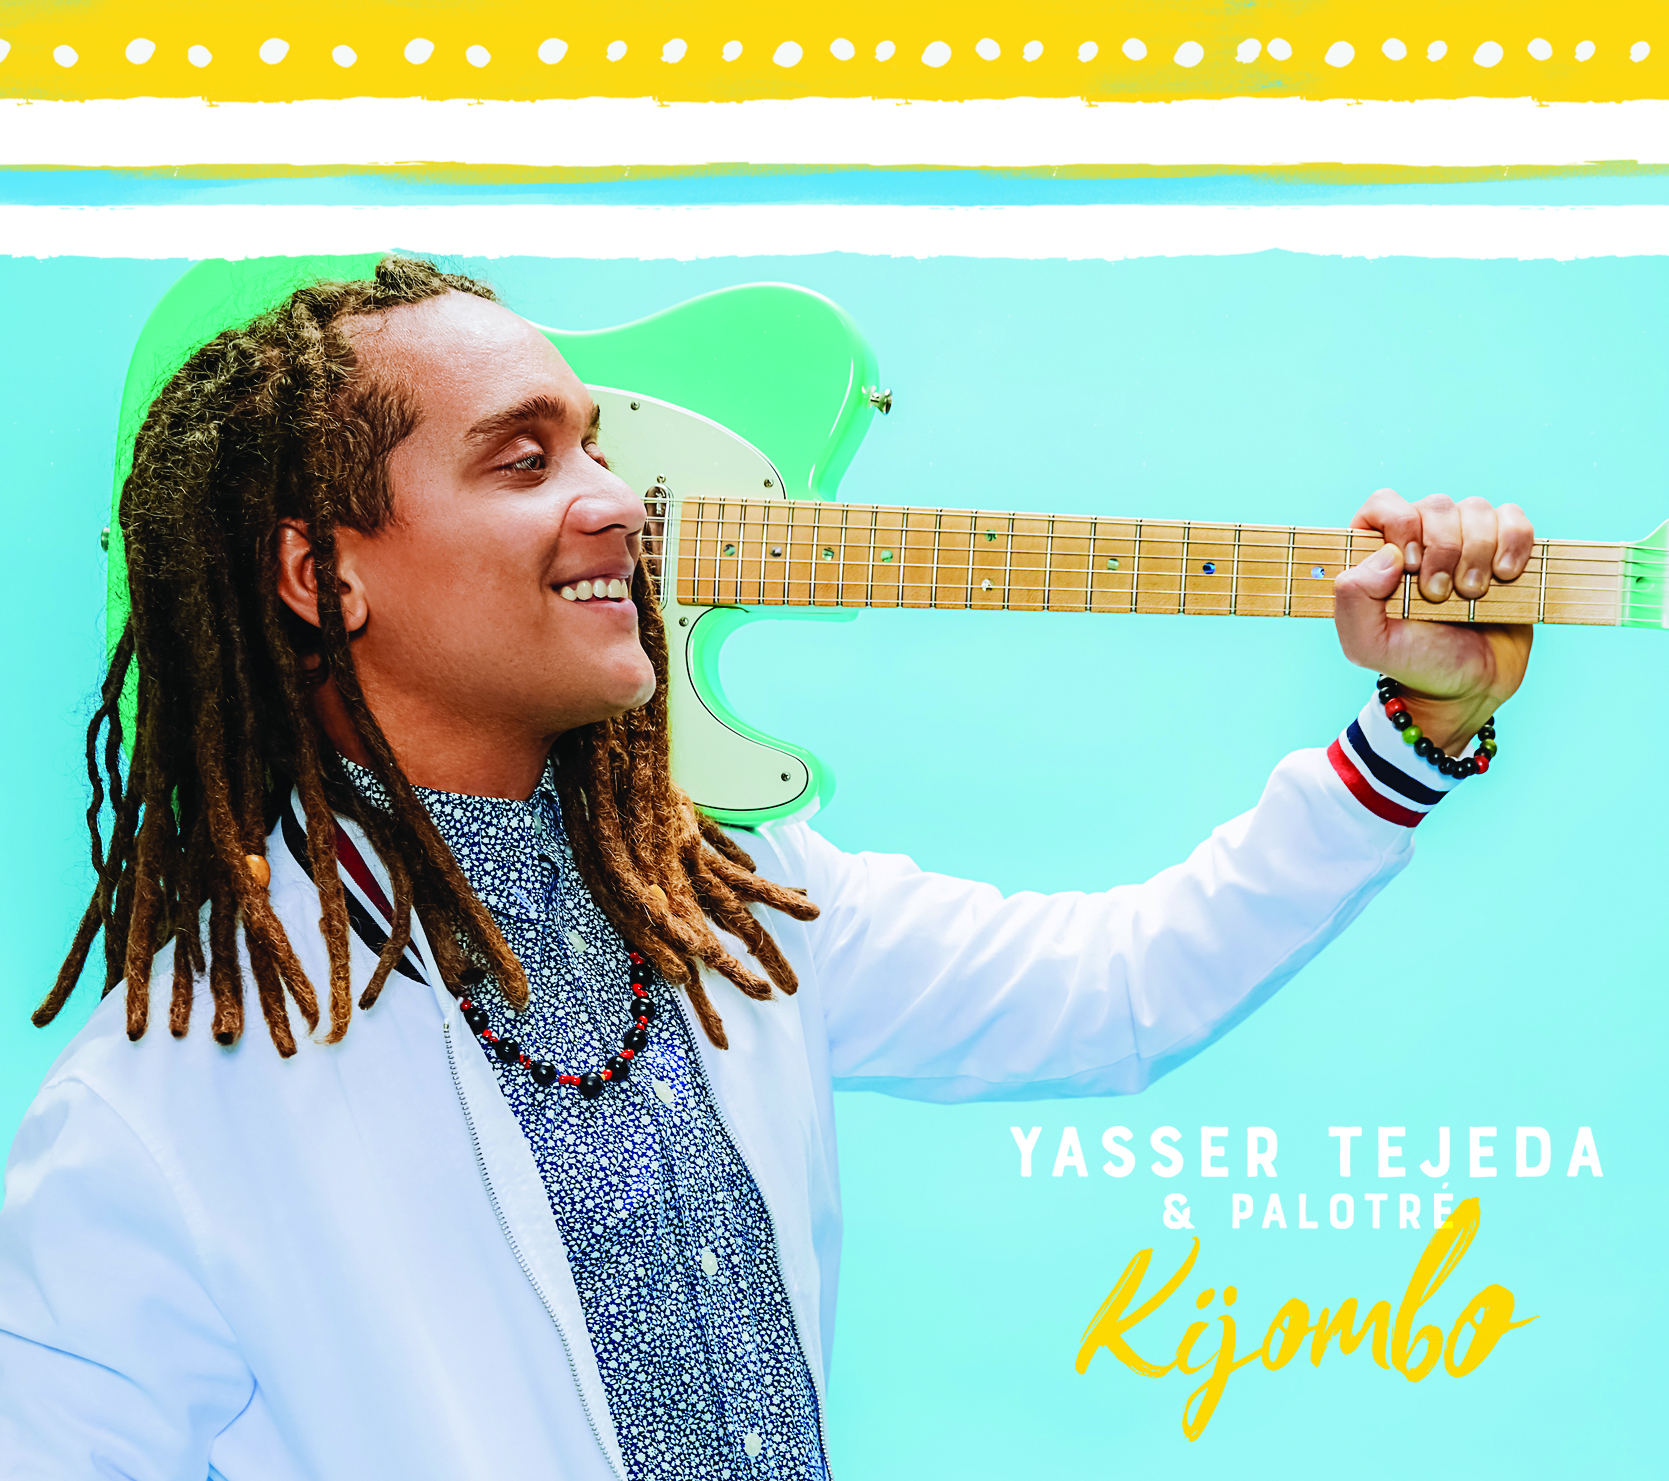 "NEW RELEASE: Yasser Tejeda & Palotré ""Kijombo"" Out Now!"